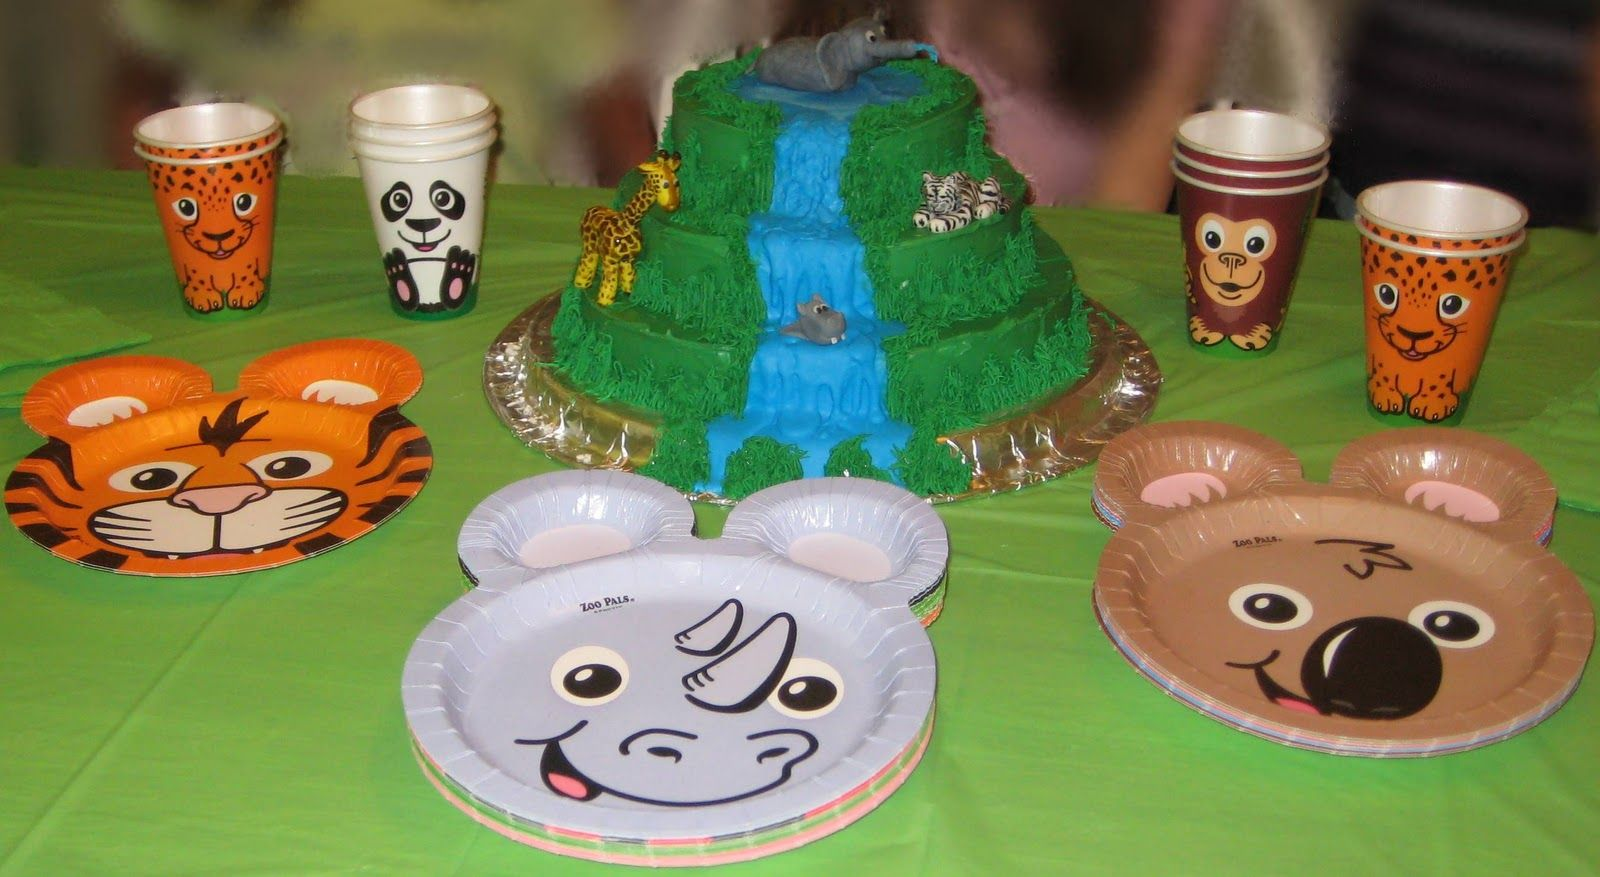 Jungle Animal Cake With Zoo Pals Animal Plates Cups Demos Wild